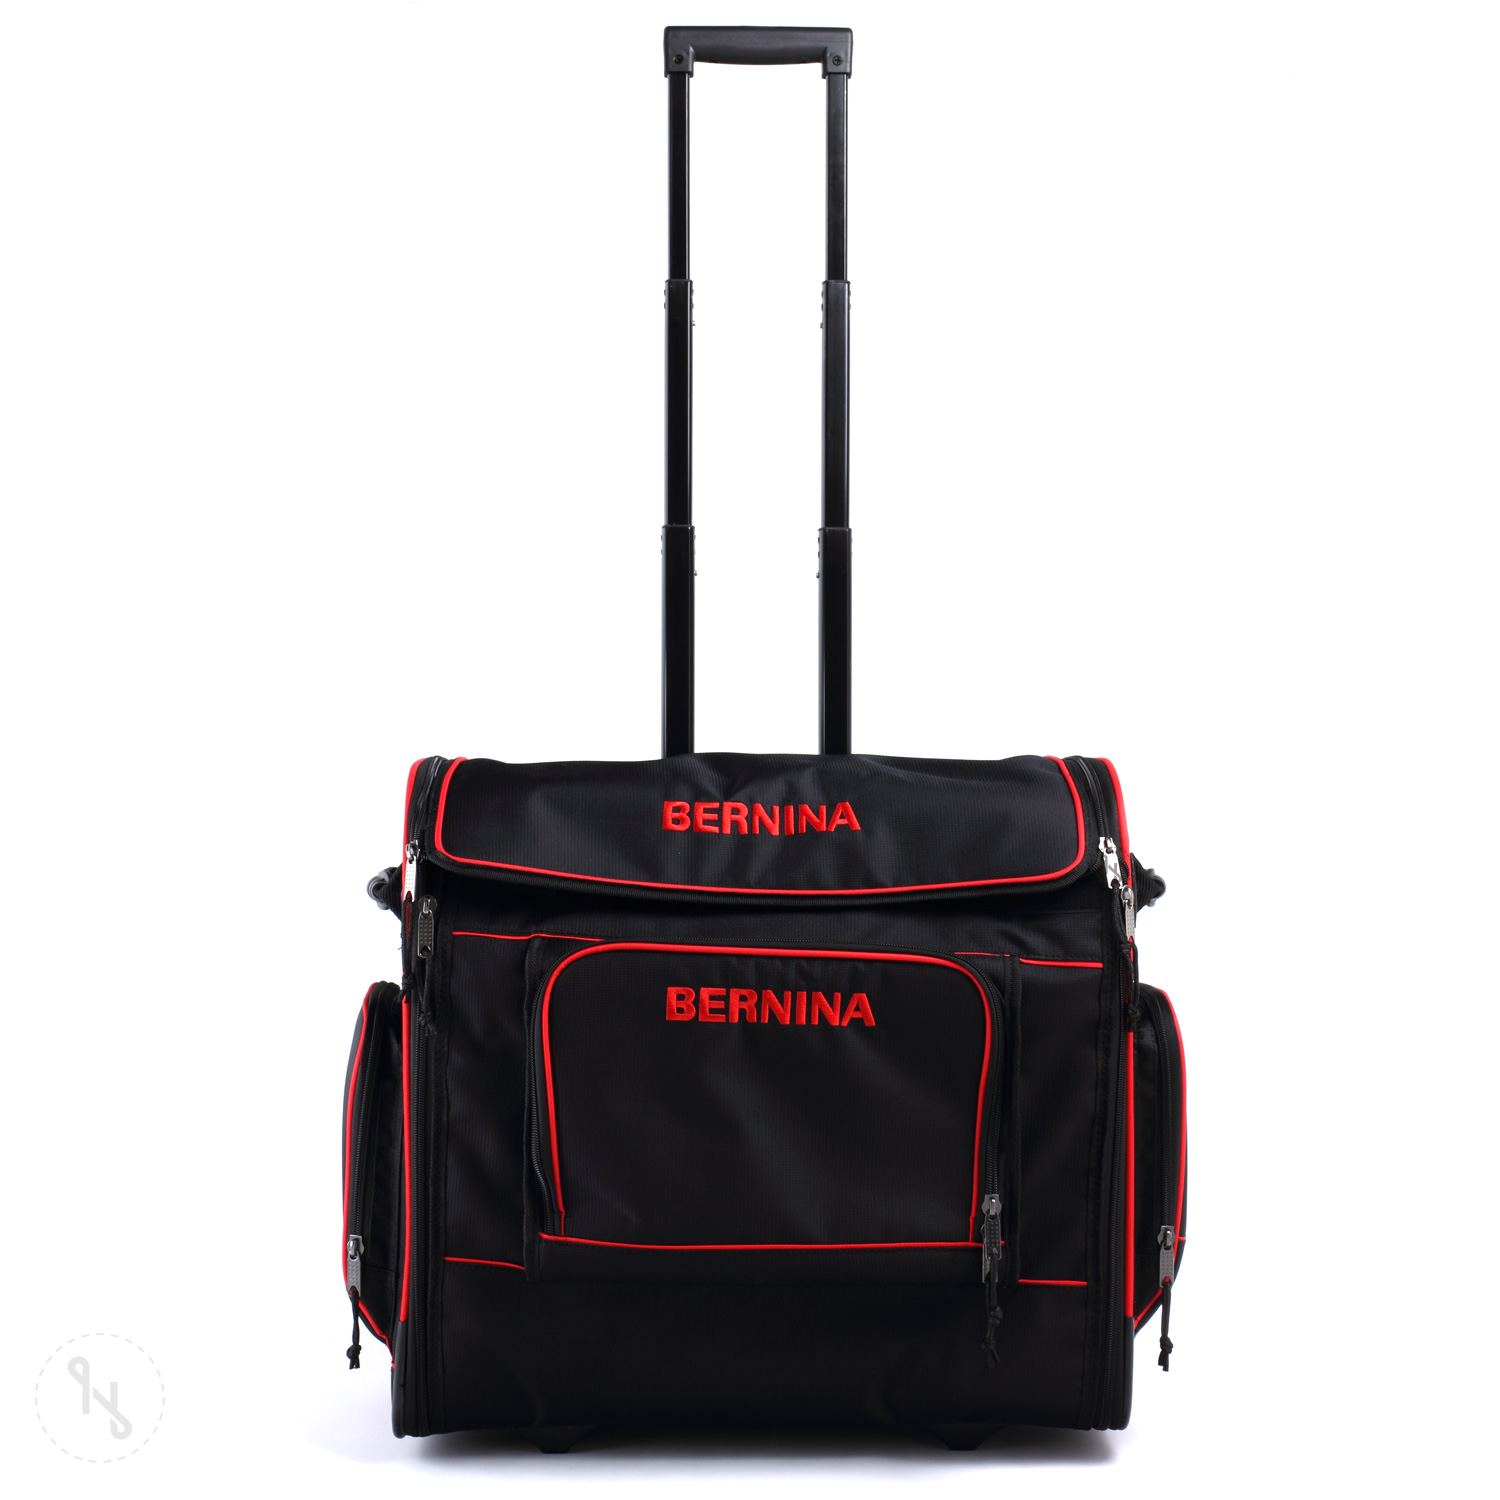 BERNINA L-Trolley